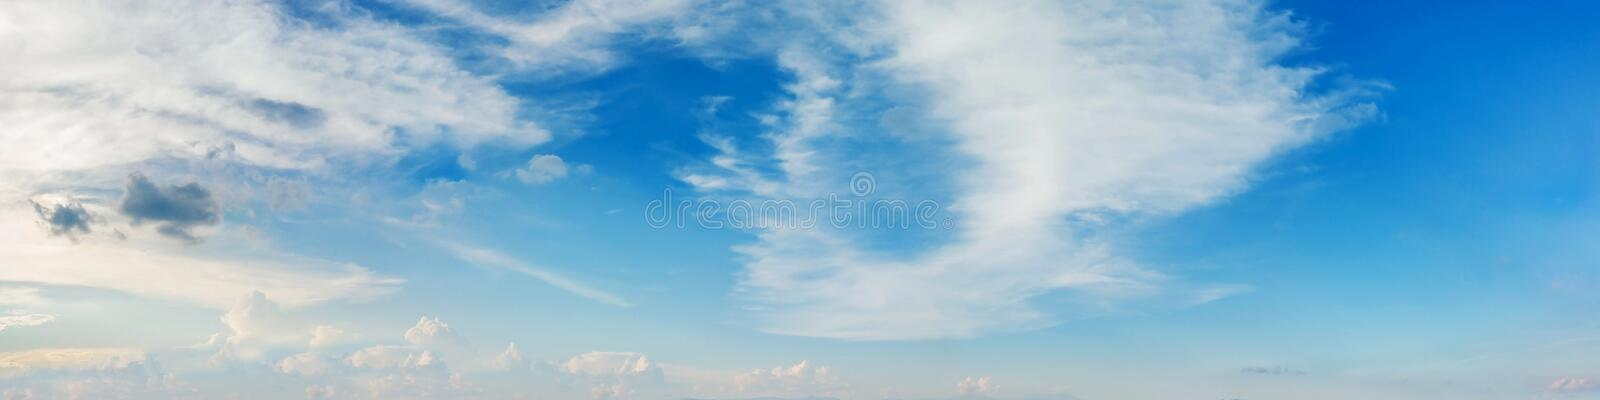 Vibrant color panoramic sky with cloud on a sunny day. Beautiful cirrus cloud. Panorama high resolution photograph stock image